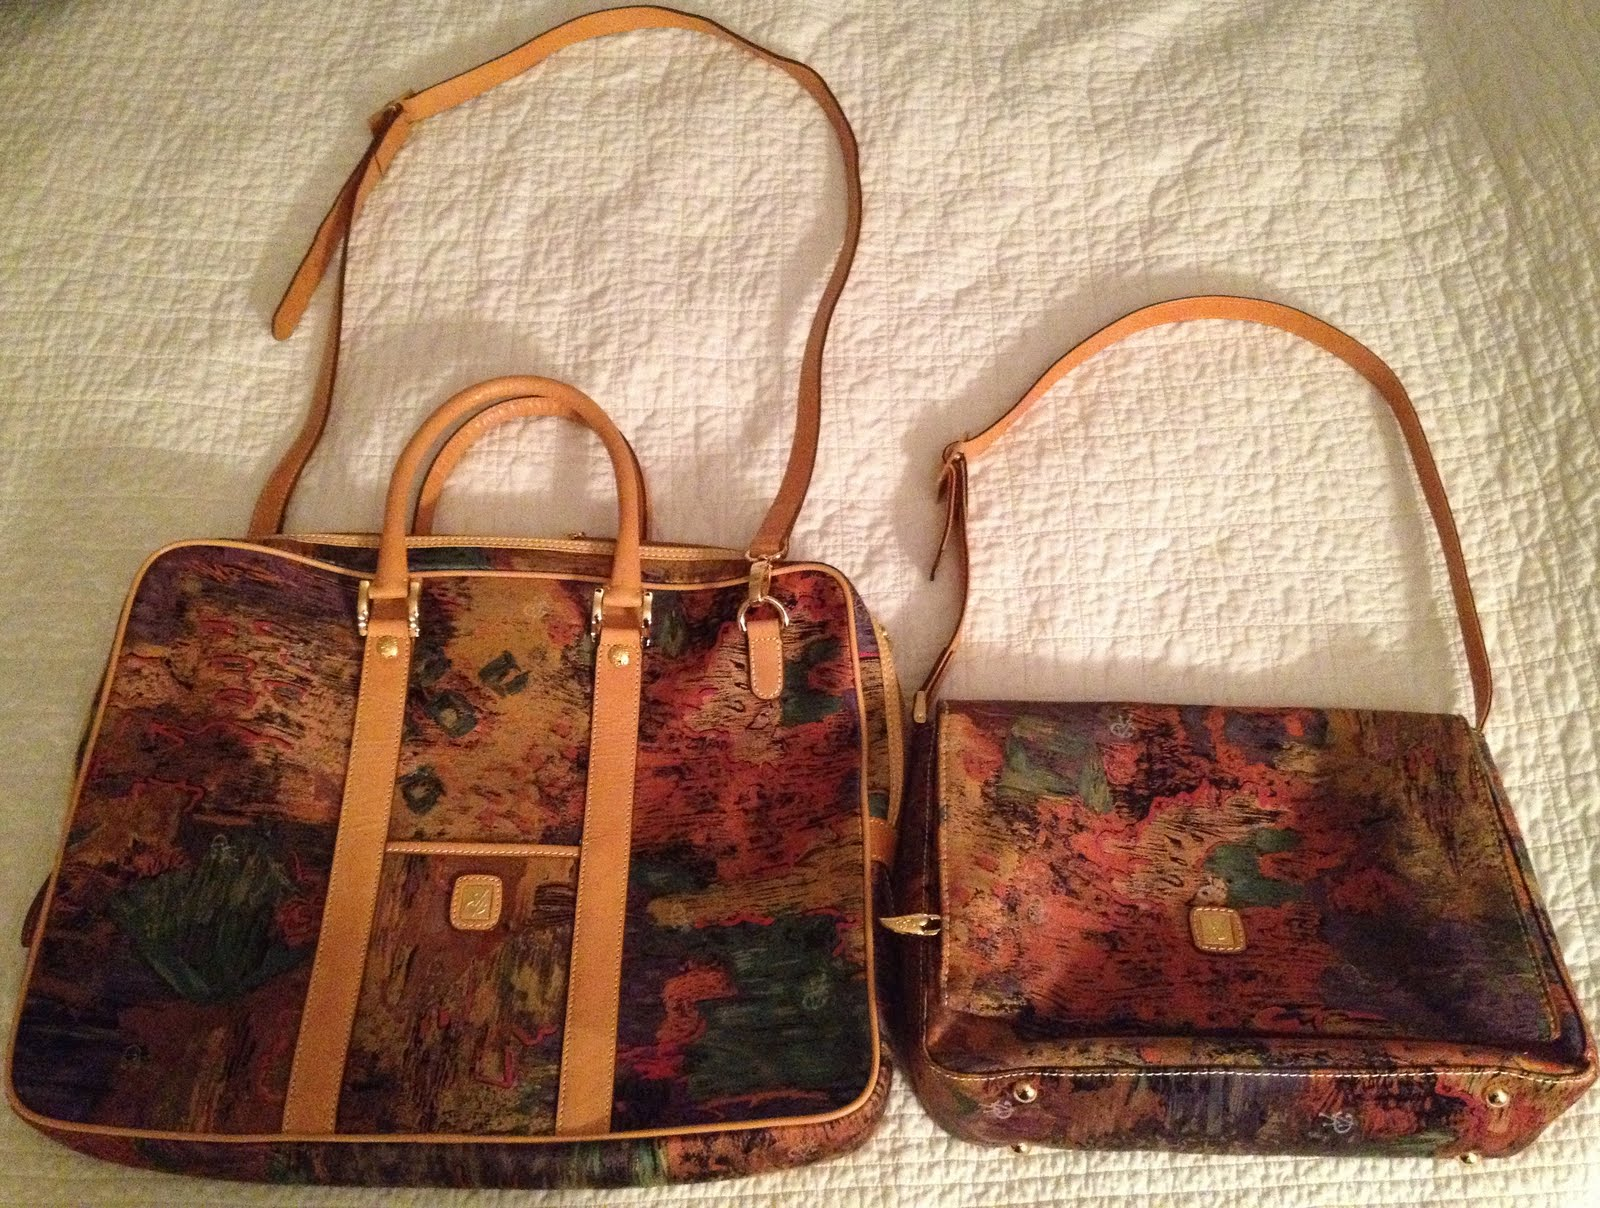 Ebay Pics Vincent Van Gogh Travel Handbag Set